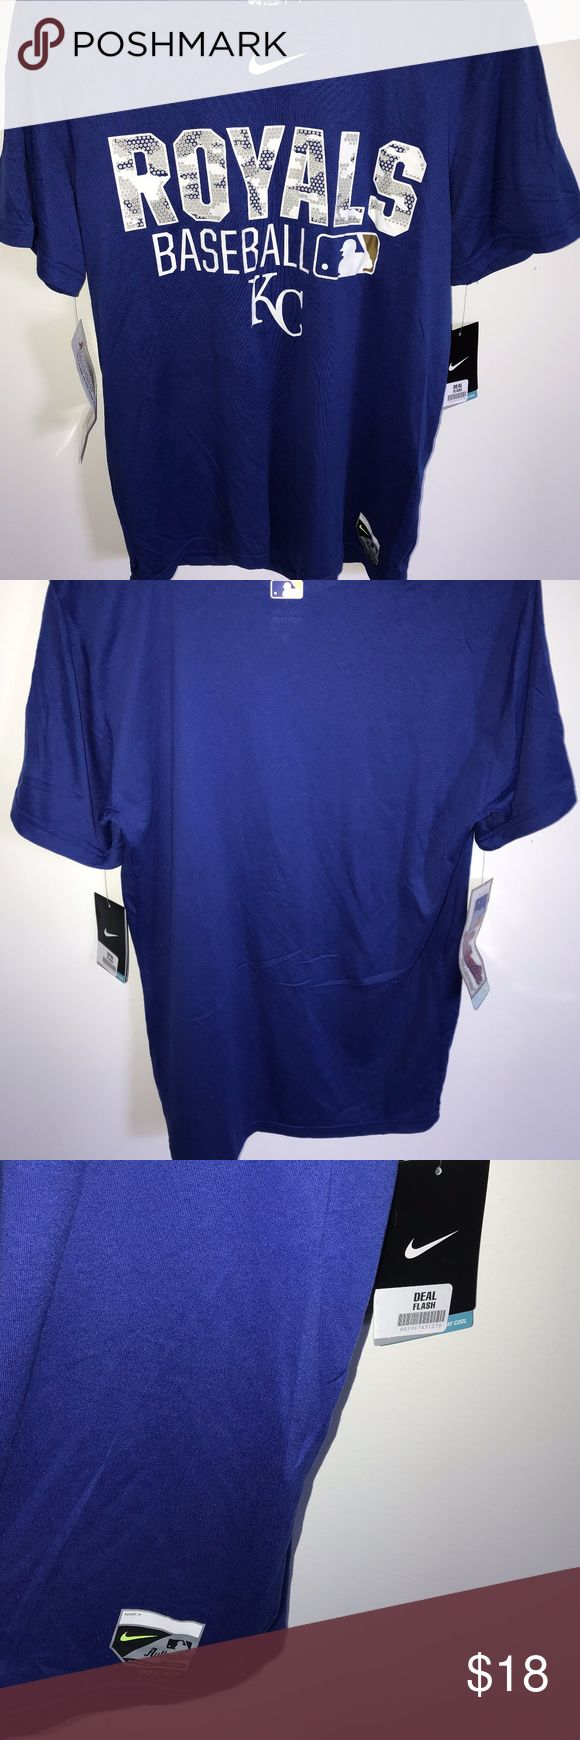 Mens Nike Kansas City Royals T-Shirt NWT-Small Mens Nike Kansas City Royals Authentic Collection Performance T-Shirt NWT-Small  Fit: Product runs true to size. For a looser fit we recommend ordering one size larger than you normally wear. Material: 100% P